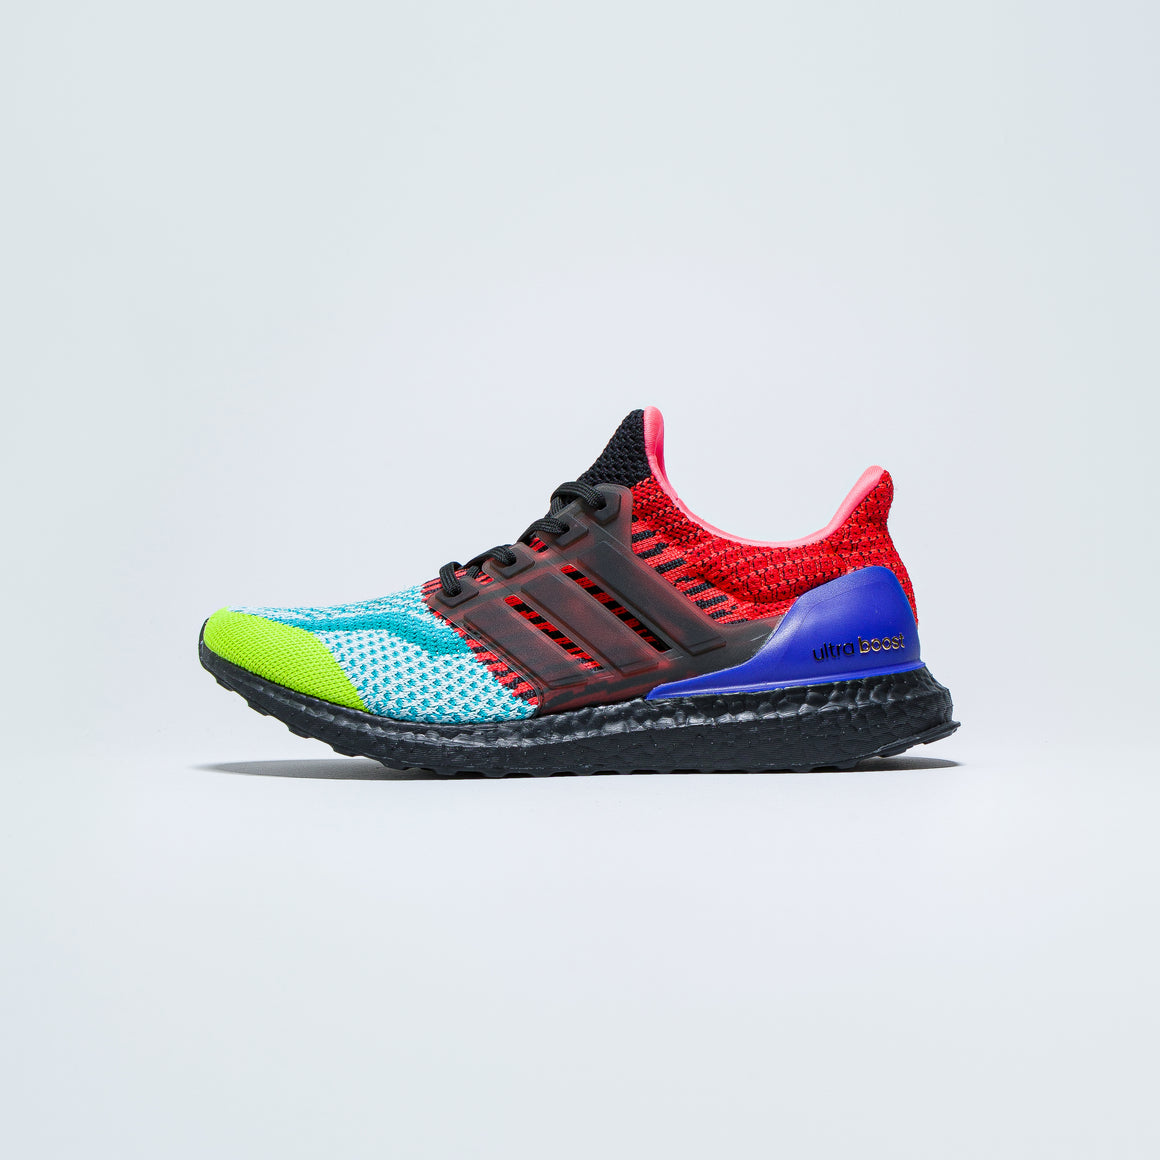 adidas - UltraBOOST DNA - Solar Lime/Core Black - Up There